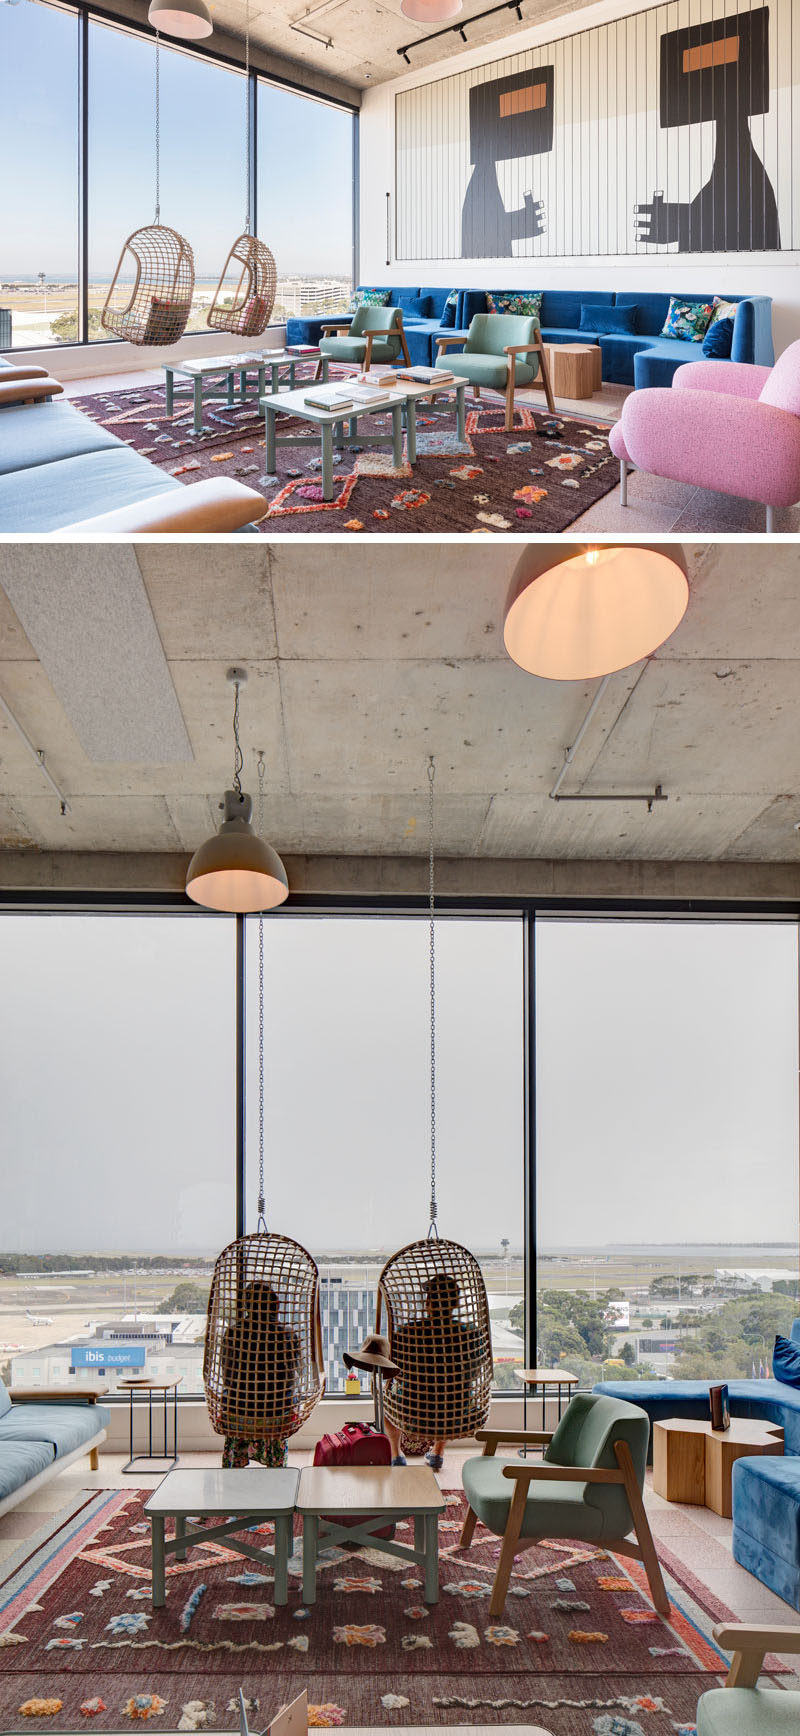 The social areas of this modern hotel are located in the 'Sky Lobby', which has been designed as a place to congregate / meet / relax and at the same time, it offers expansive views south across Botany Bay and Sydney International airport. #ModernHotel #HotelInterior #InteriorDesign